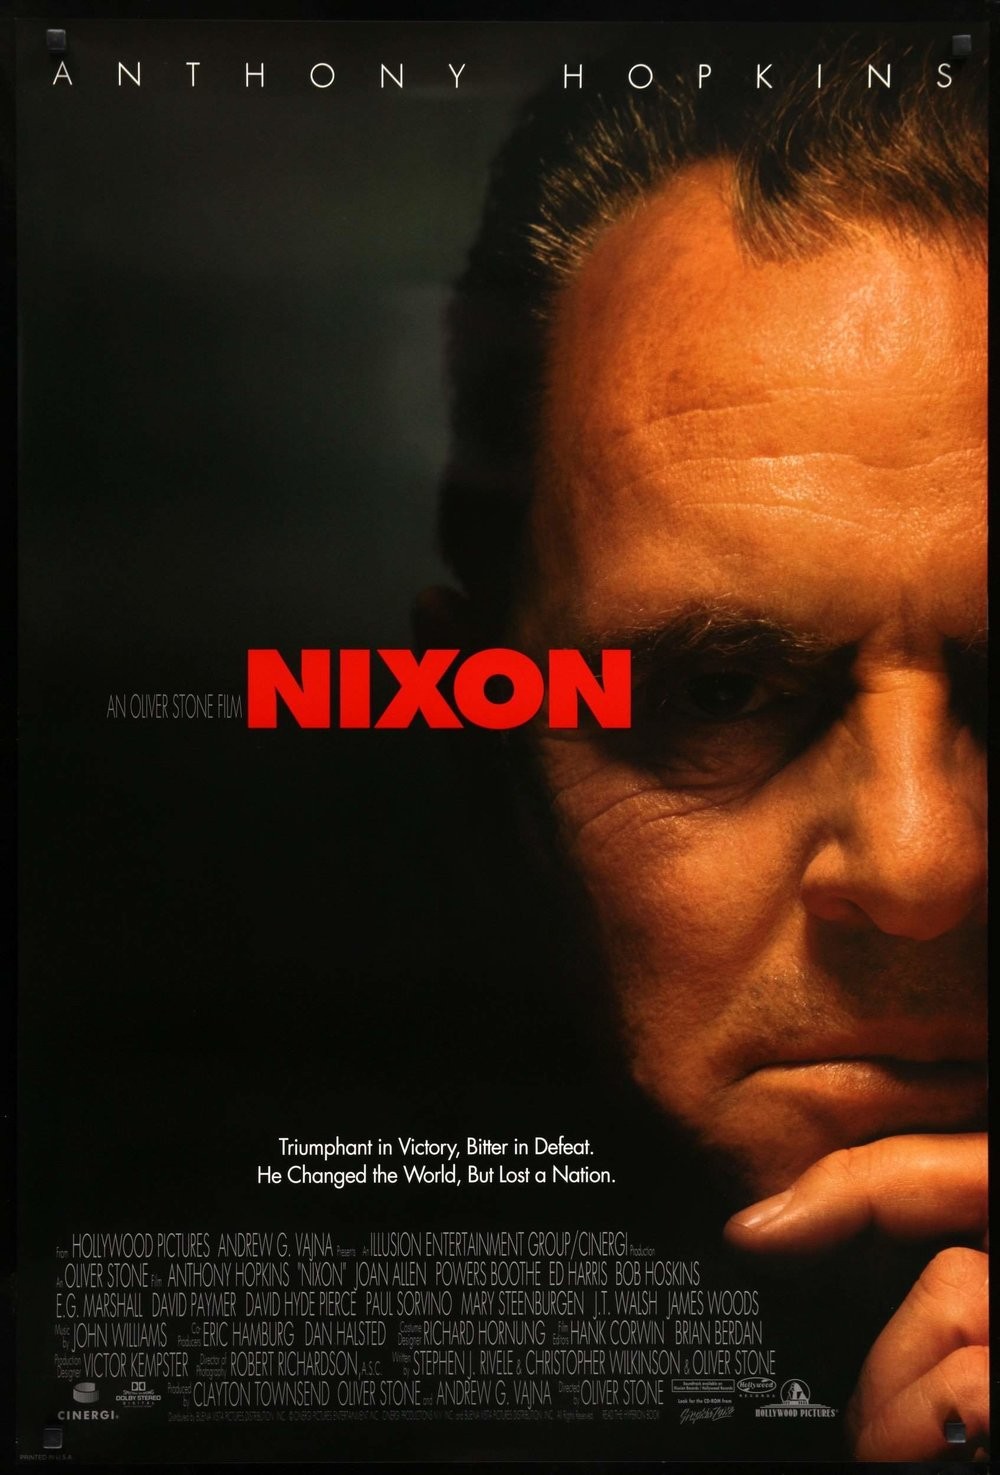 Nixon_1995_original_film_art_2000x.jpg